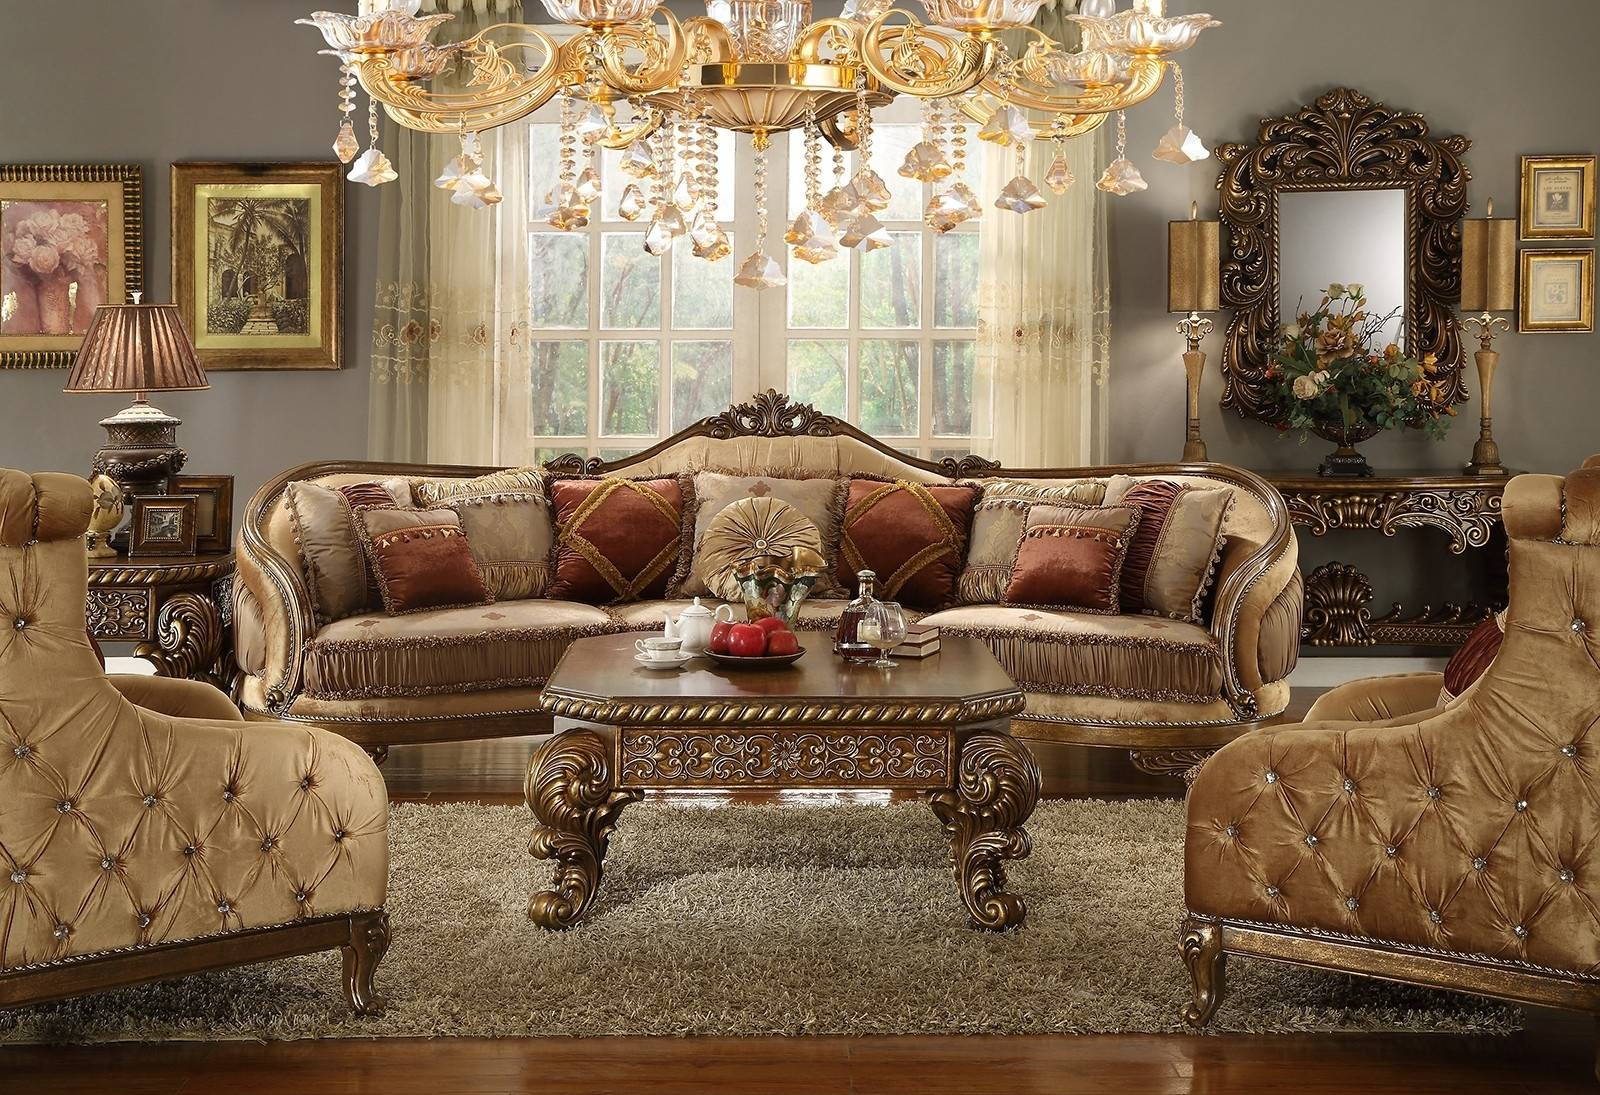 12 Inspirations Of European Style Sectional Sofas within European Style Sectional Sofas (Image 8 of 30)